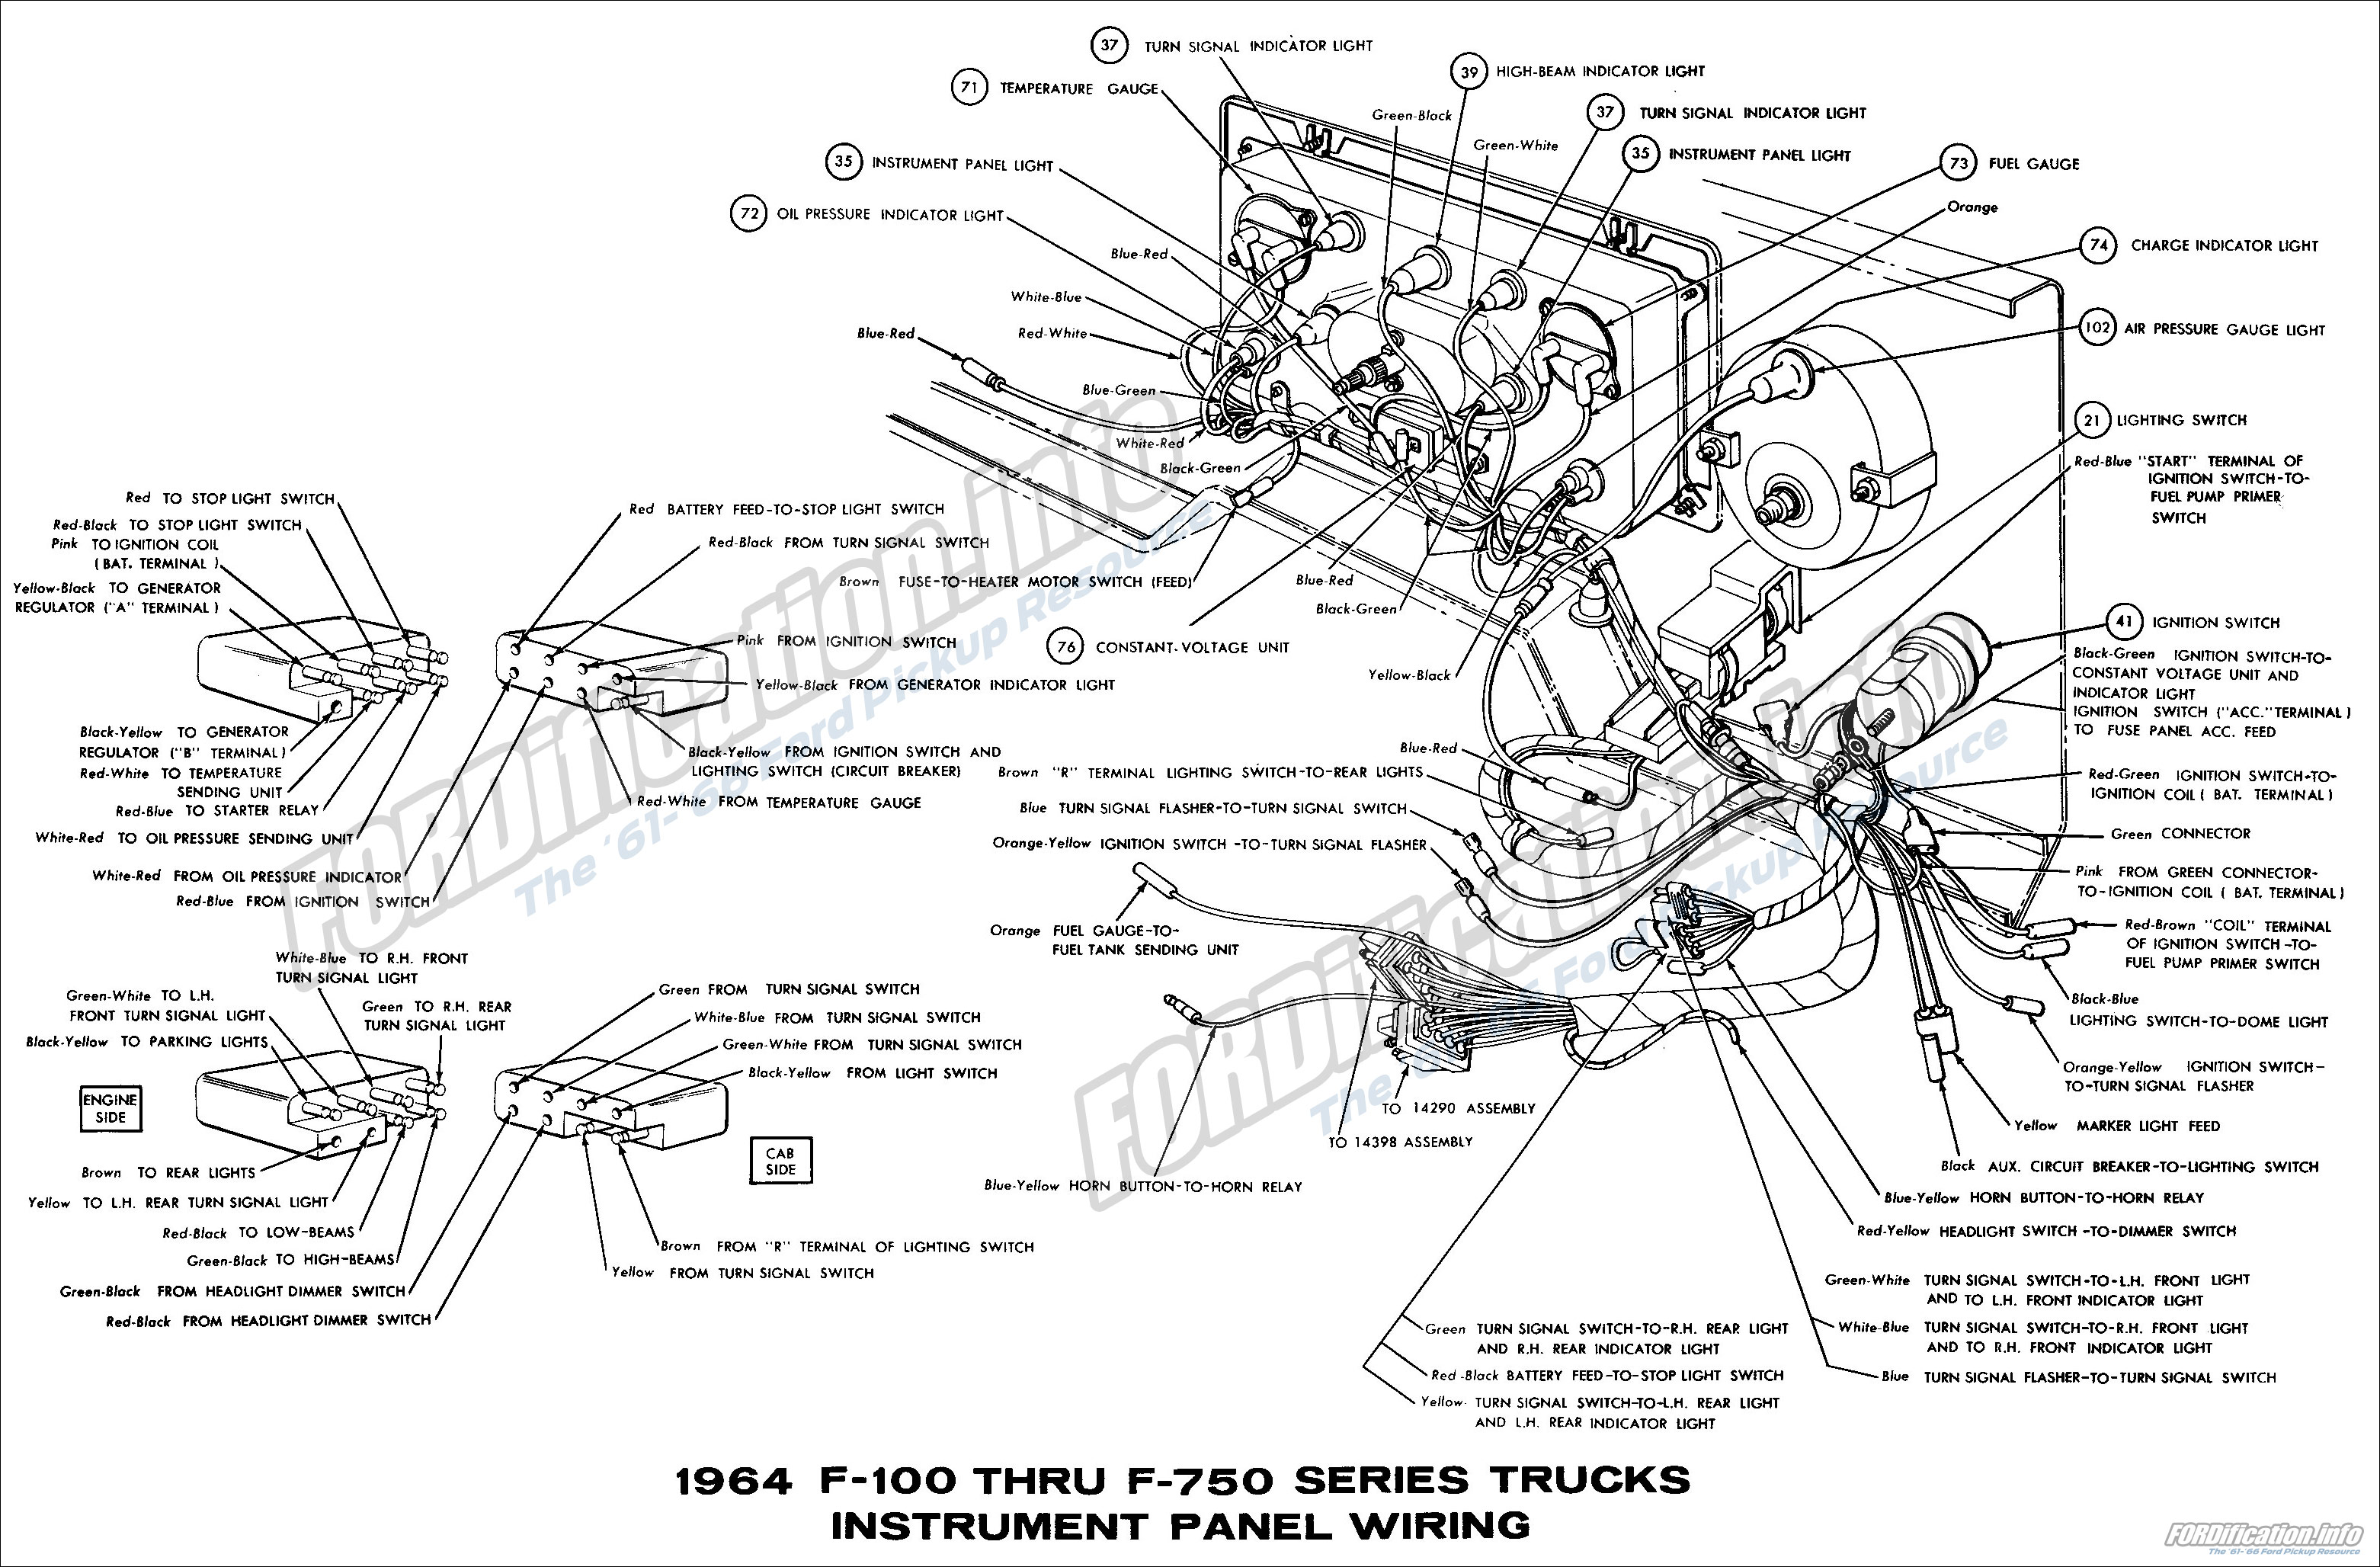 1964 Ford Truck Wiring Diagrams The 61 66 Lighting Circuit Diagram For Two Lights F100 A Thru F750 Series Trucks